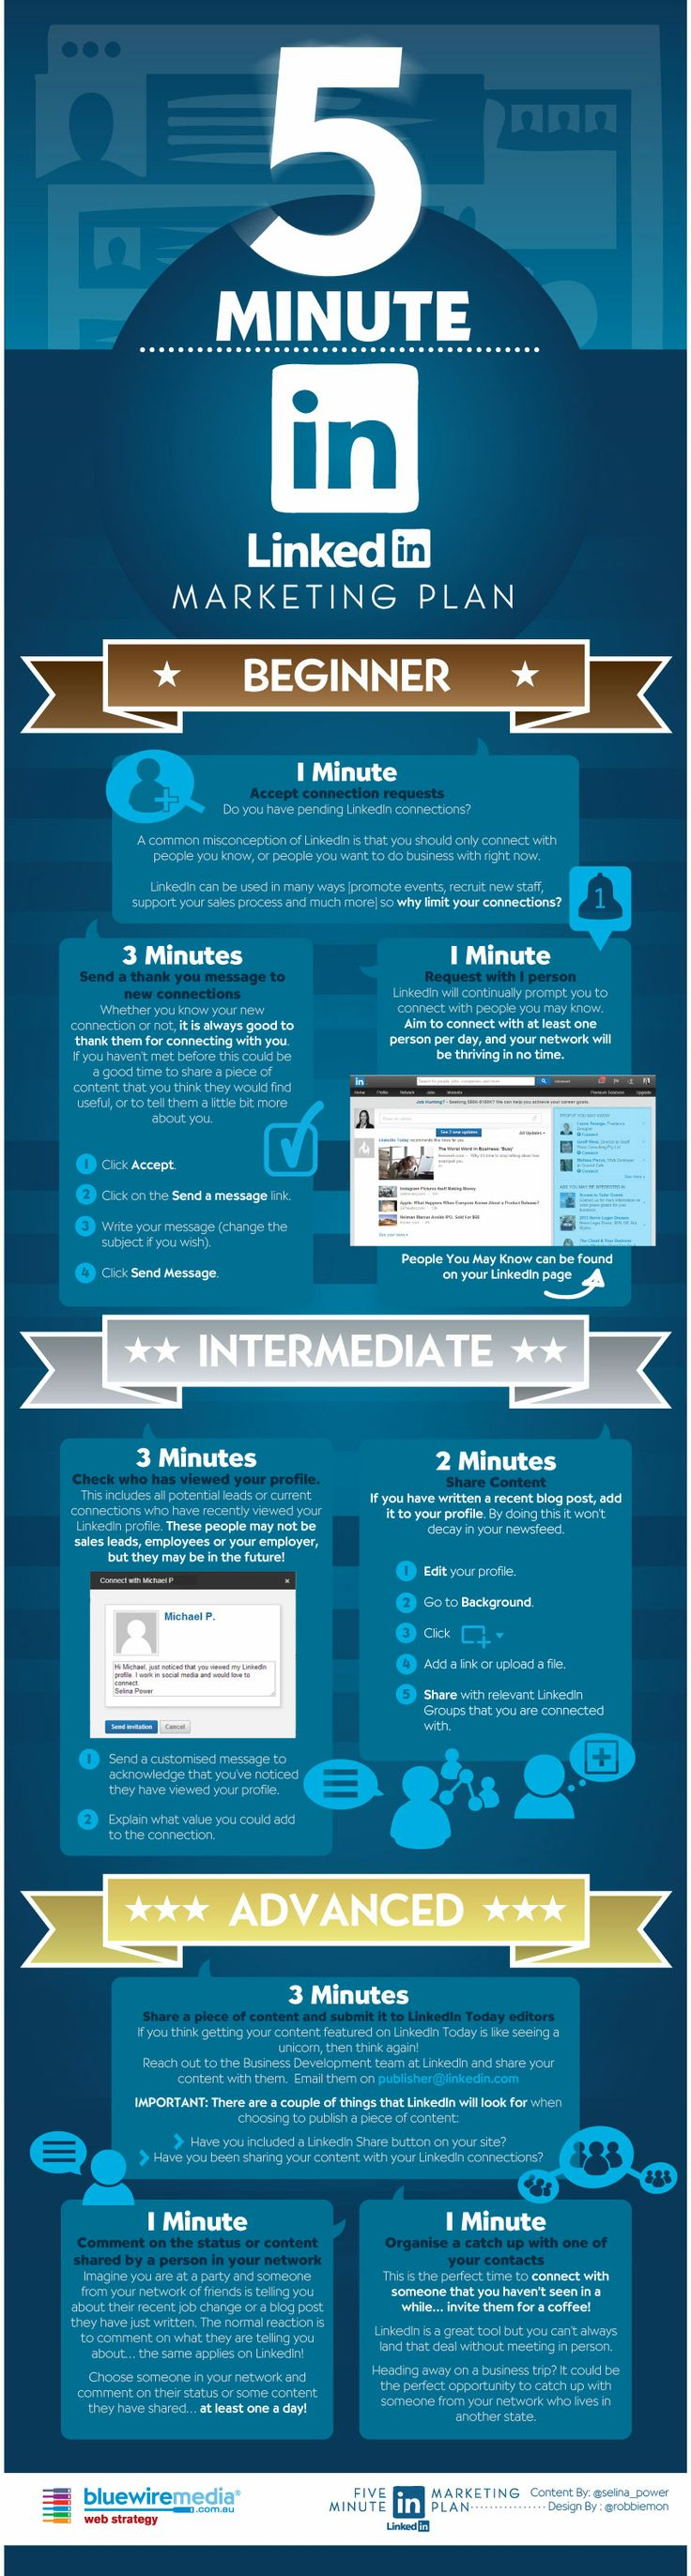 Top tips to expand your LinkedIn network in 5 minutes